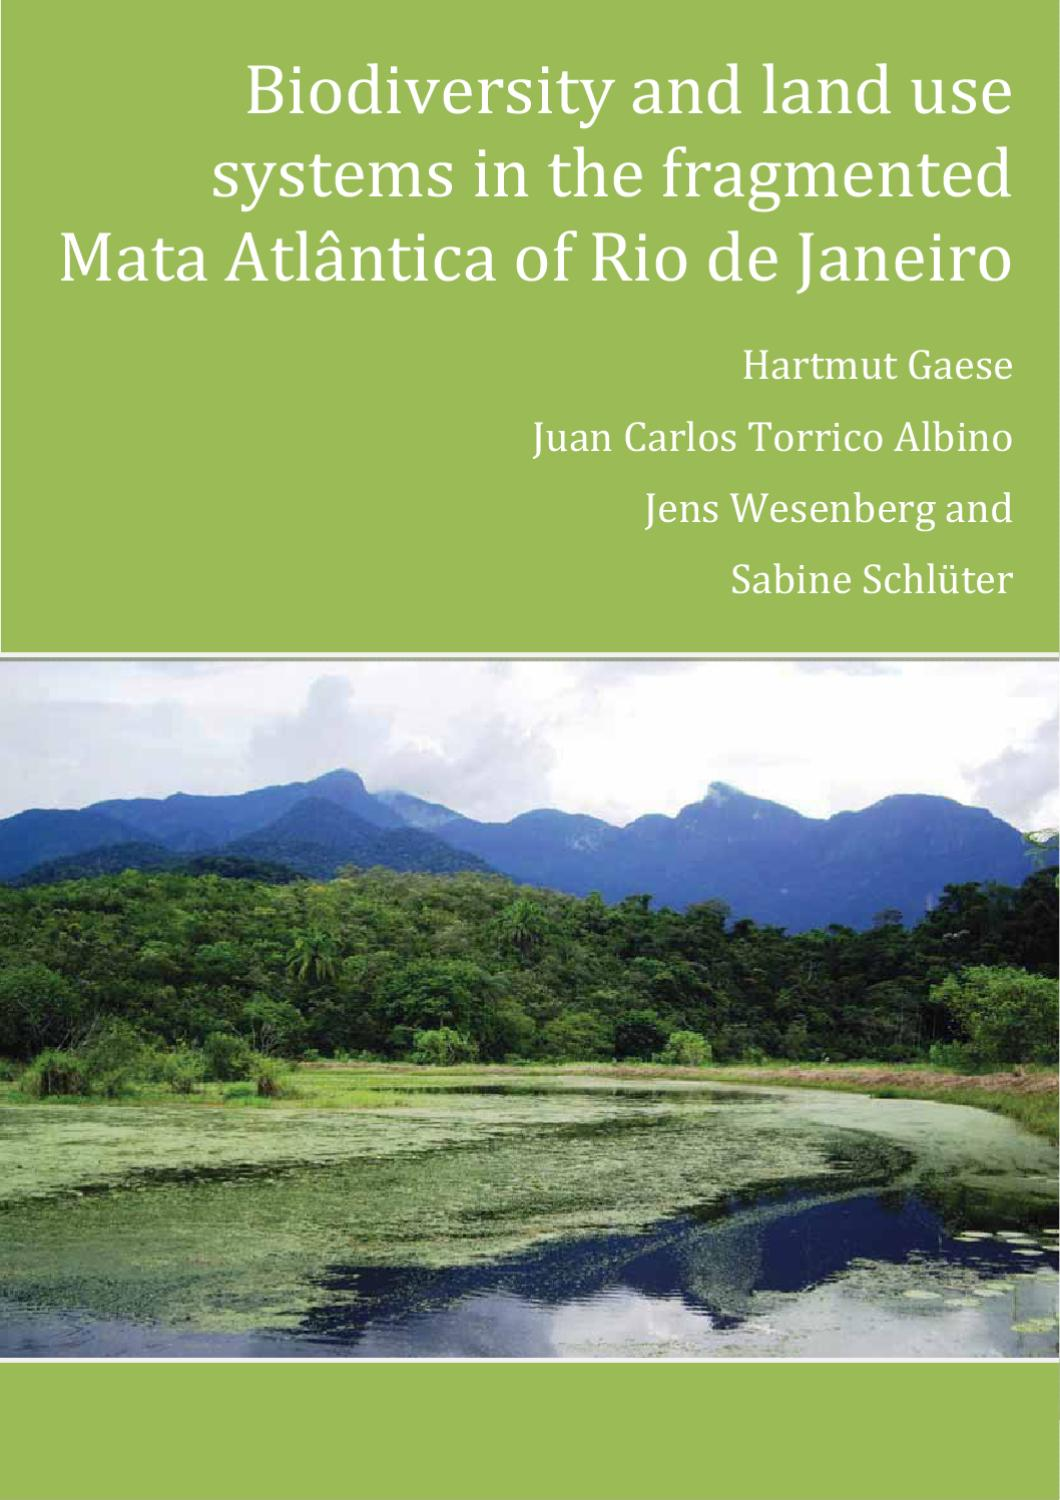 Biodiversity And Land Use Systems In The Fragmented Mata Atlantica